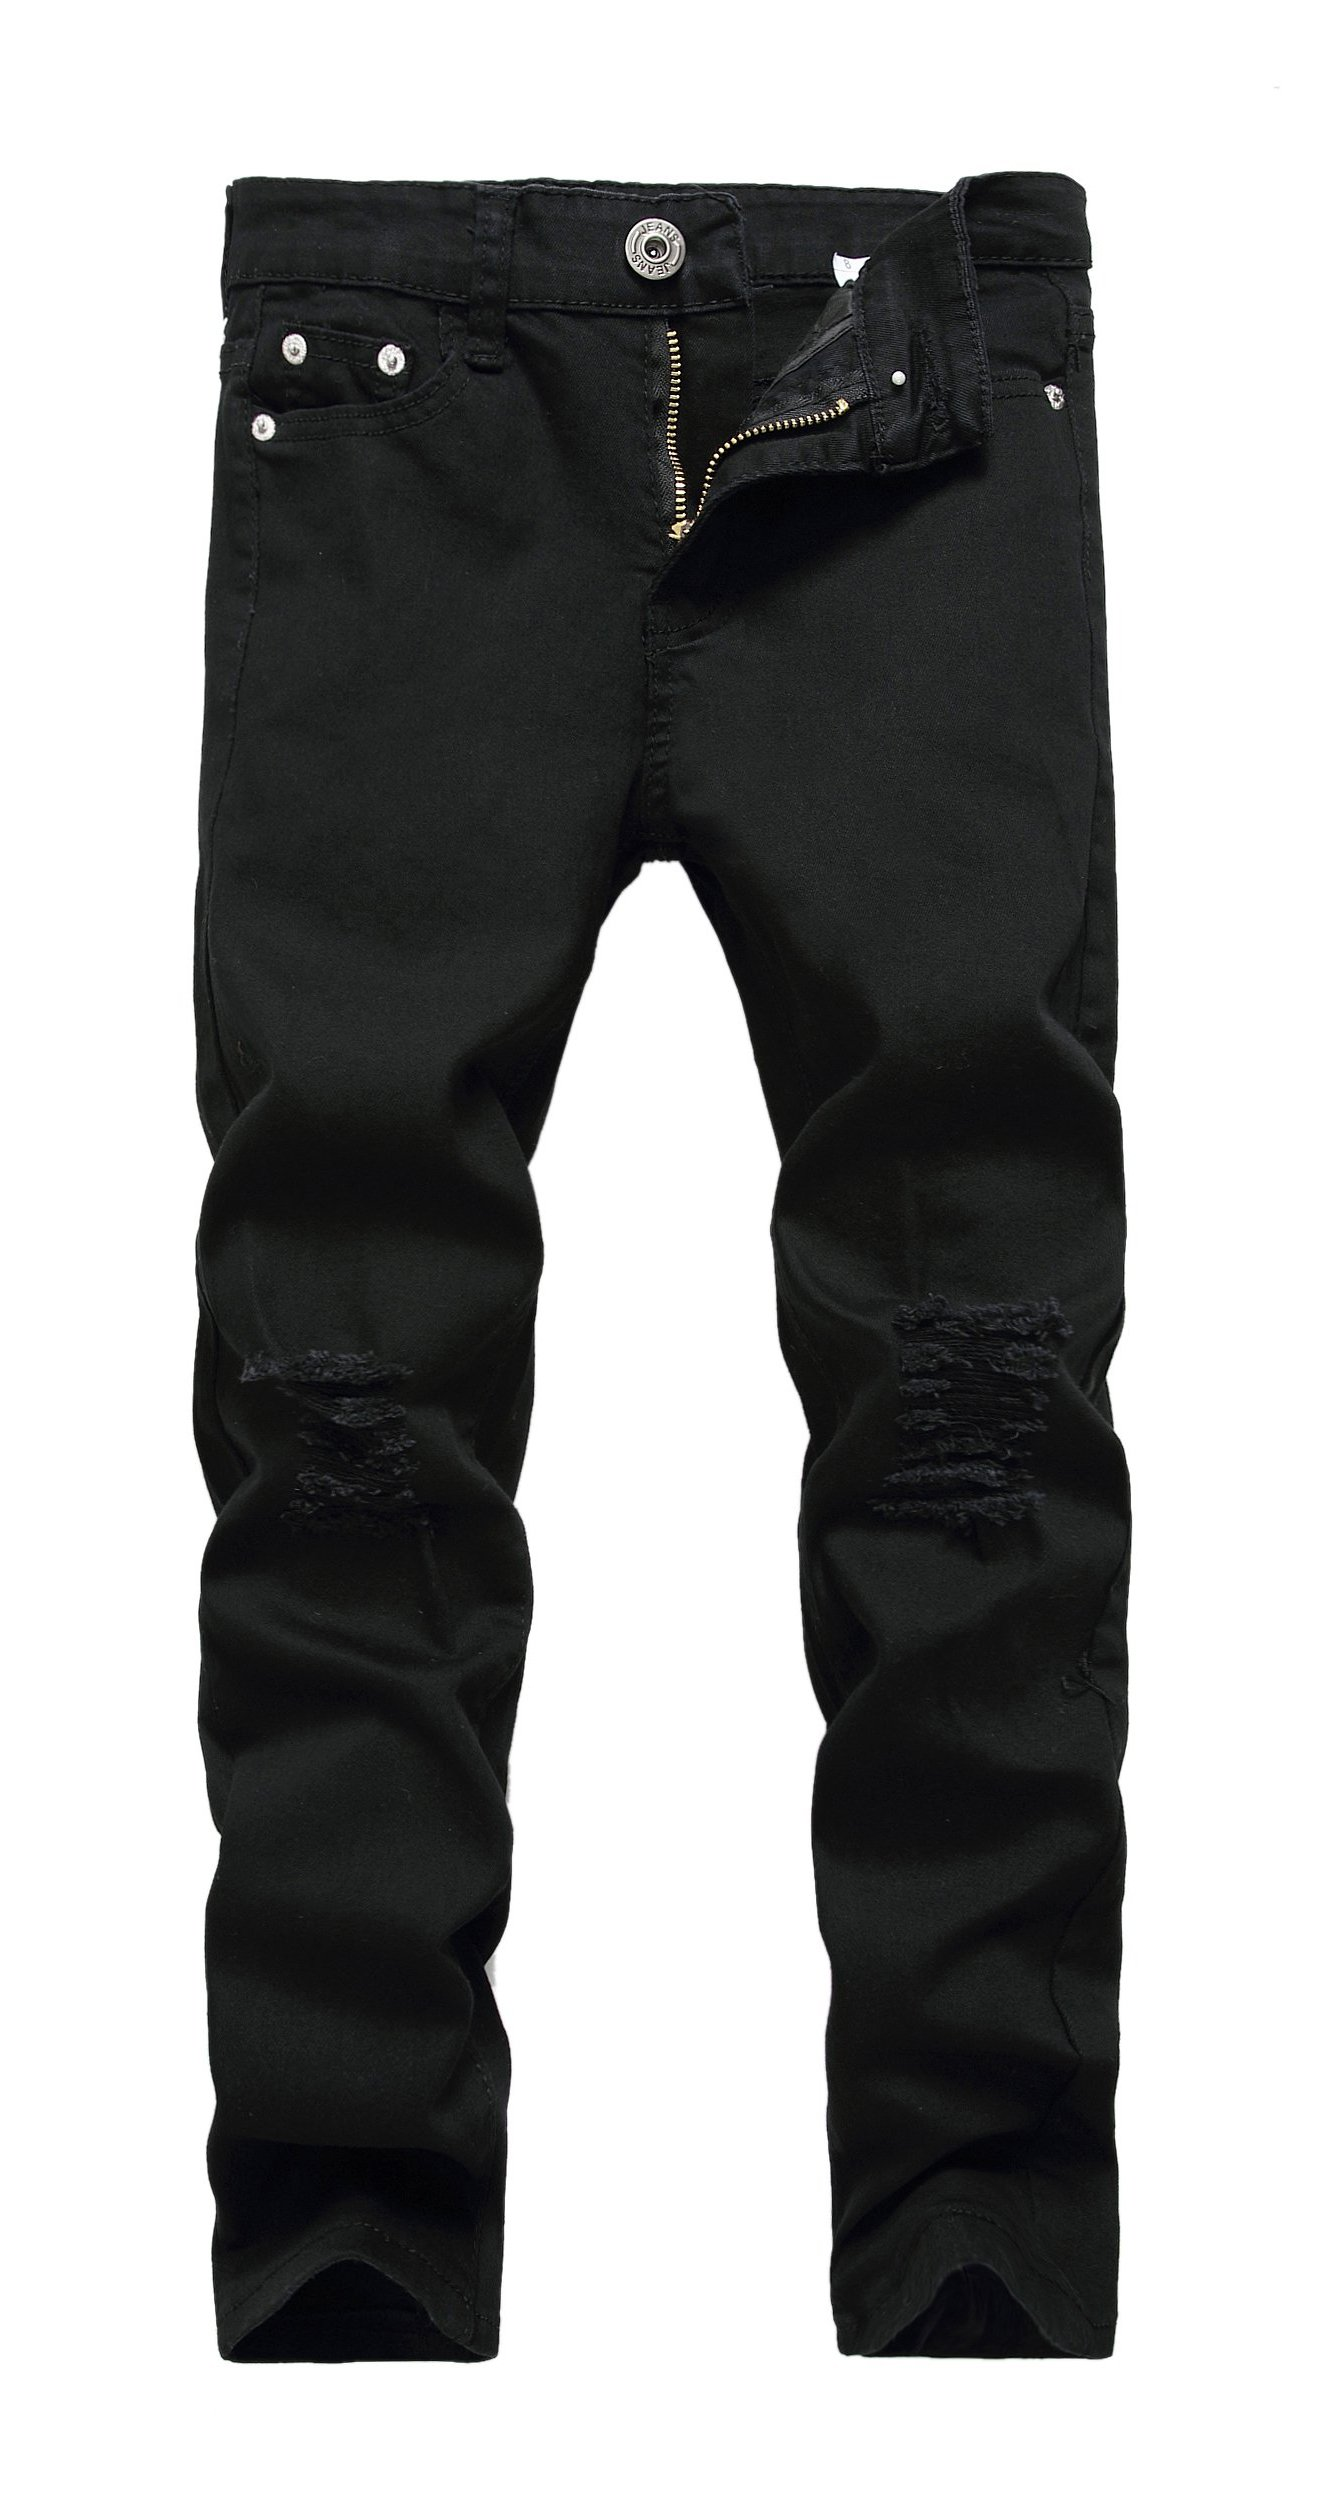 CLOTPUS Boy's Black Skinny Ripped Jeans Slim Fit Distressed Destroyed Stretch Pants Black 8